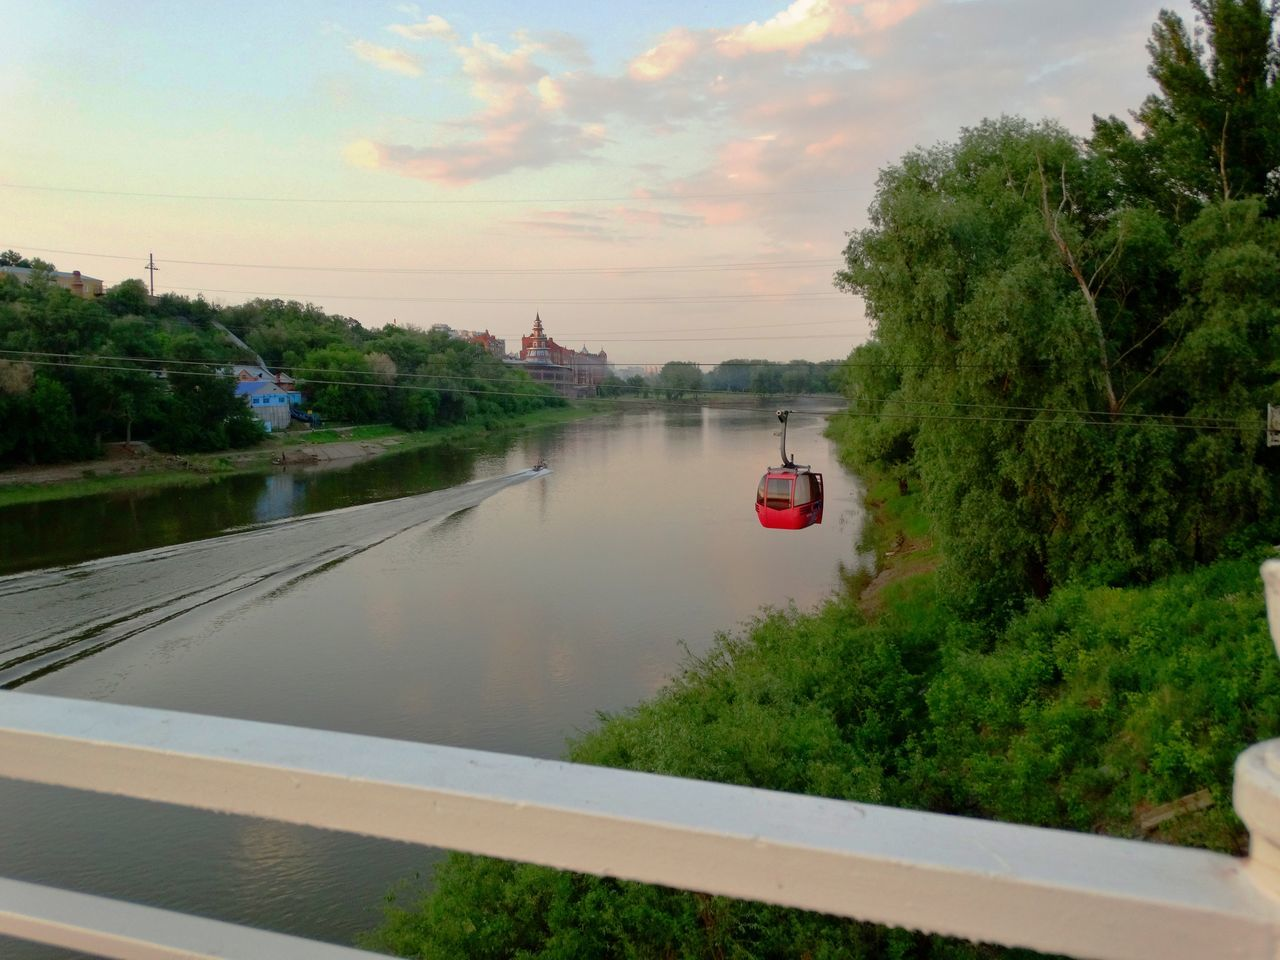 Reflections In The Water River Ural Ural Evening Sky Bridge Sunset Funicular Cable Car River View Trees Architecture Bilding Reflections Beautiful Eyeem Gallery Taking Photos. From My Point Of View Capture The Moment My Favorite Photo I LOVE PHOTOGRAPHY Colors Beauty In Nature Naturelovers Nature Lover EyeEm Best Edits The Great Outdoors - 2016 EyeEm Awards